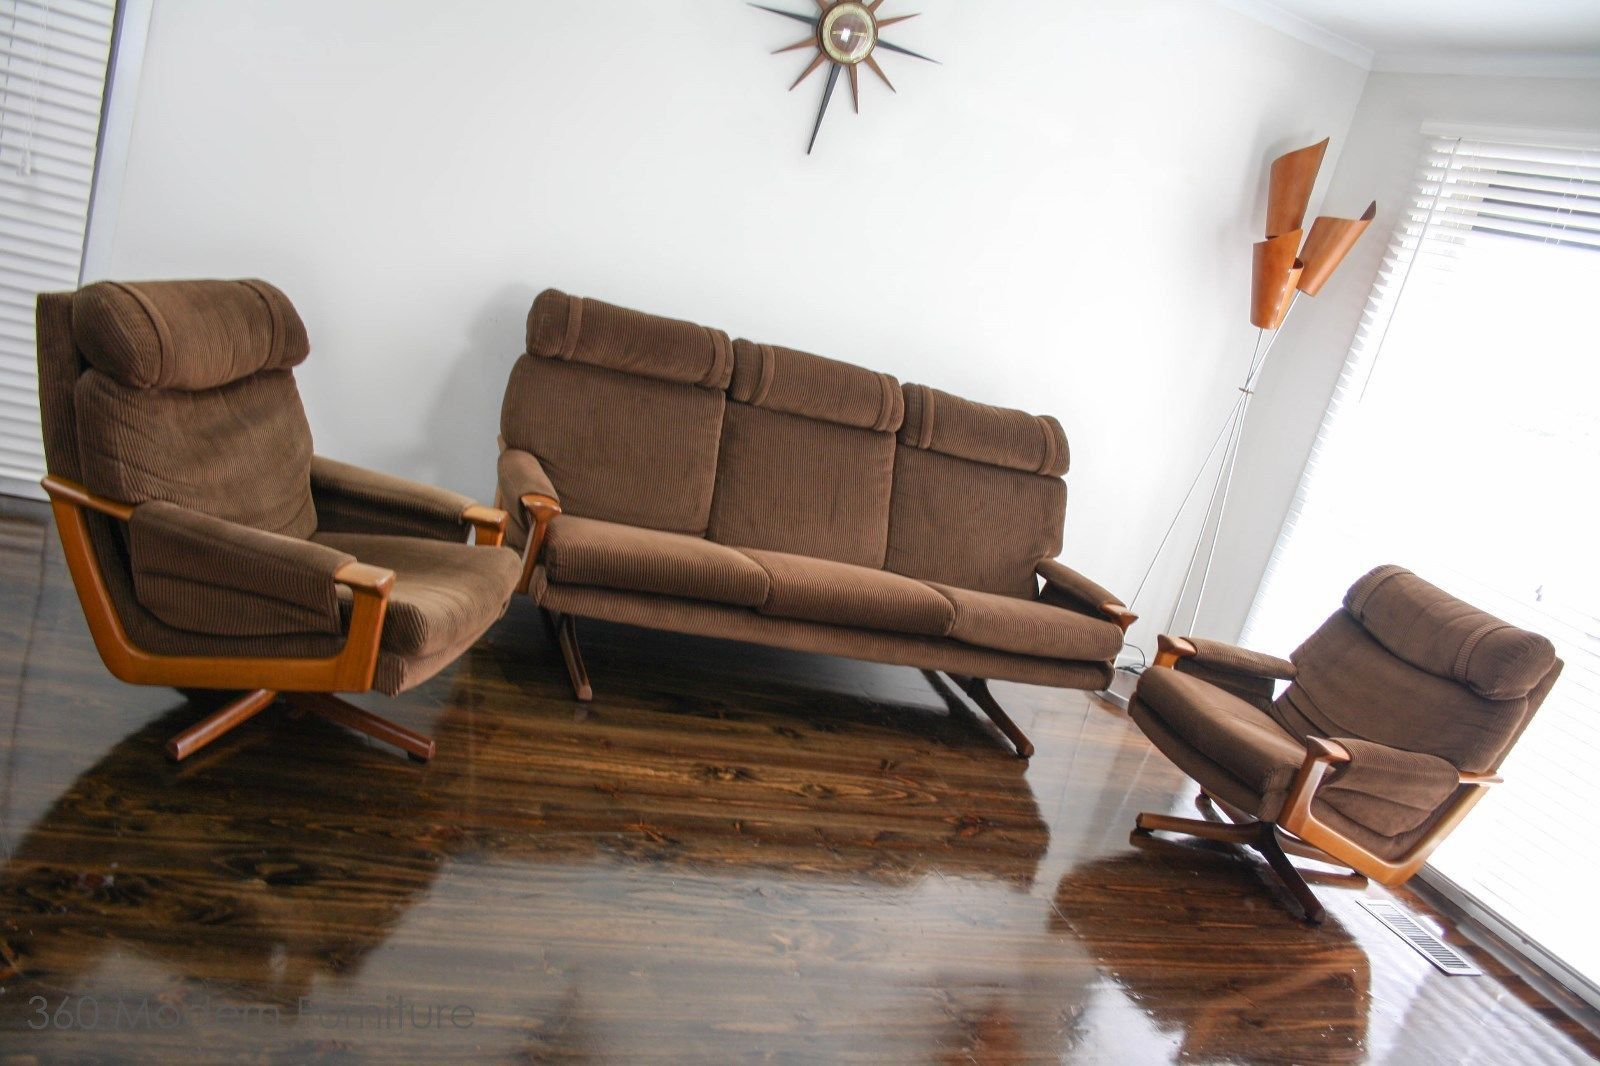 Fabulous Mid Century Modern Tessa T21 Swivel Armchairs Lounge Suite 3 Caraccident5 Cool Chair Designs And Ideas Caraccident5Info